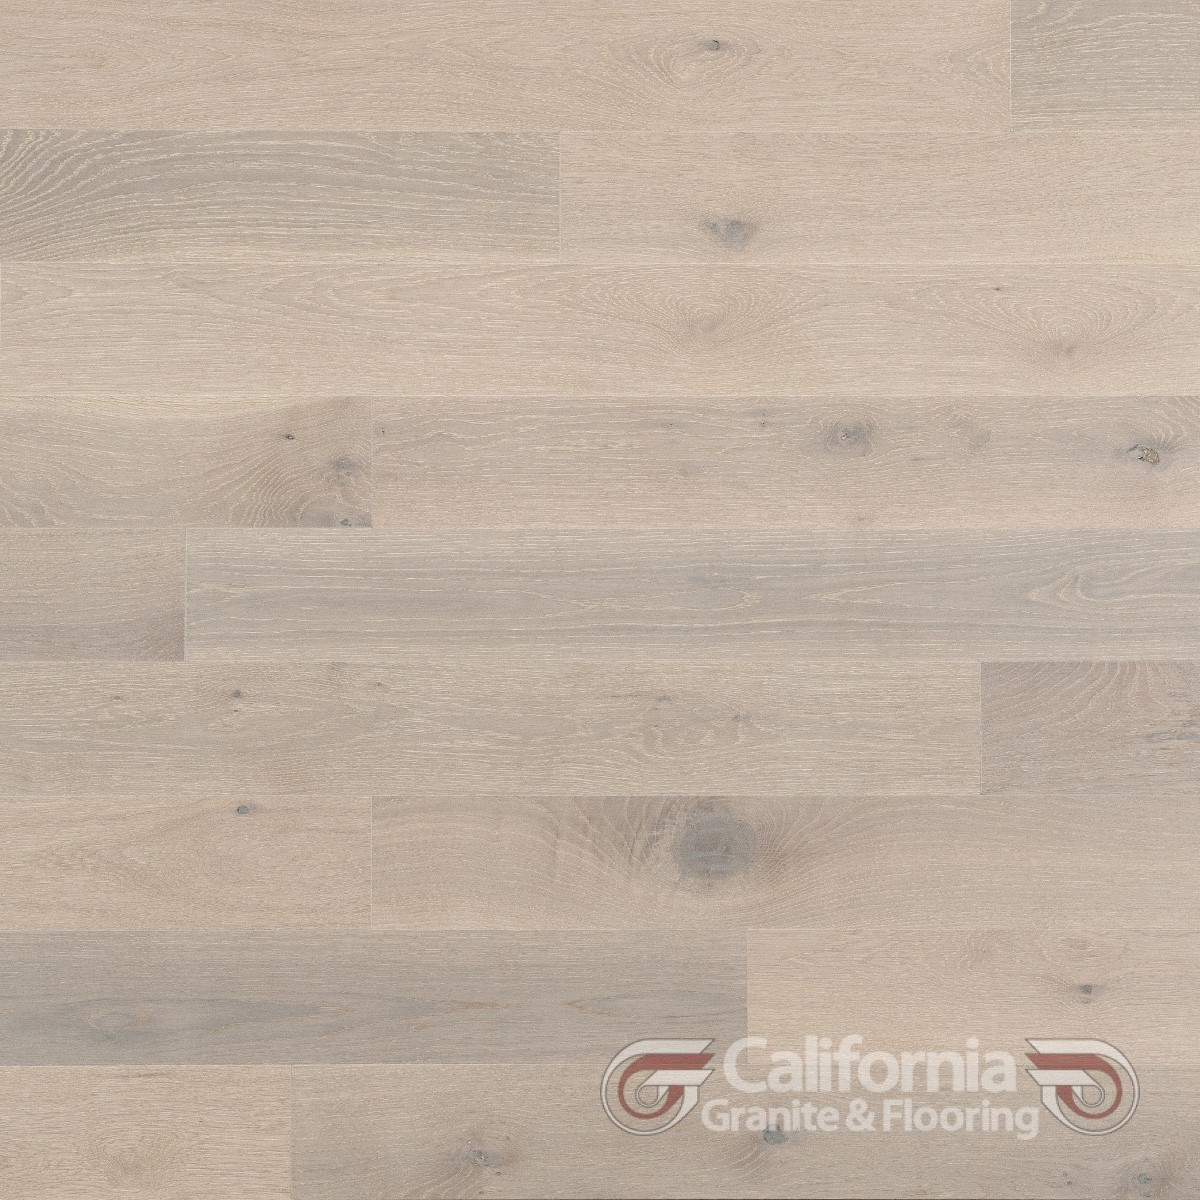 hardwood-flooring-white-oak-bubble-bath-character-brushed-herringbone-2